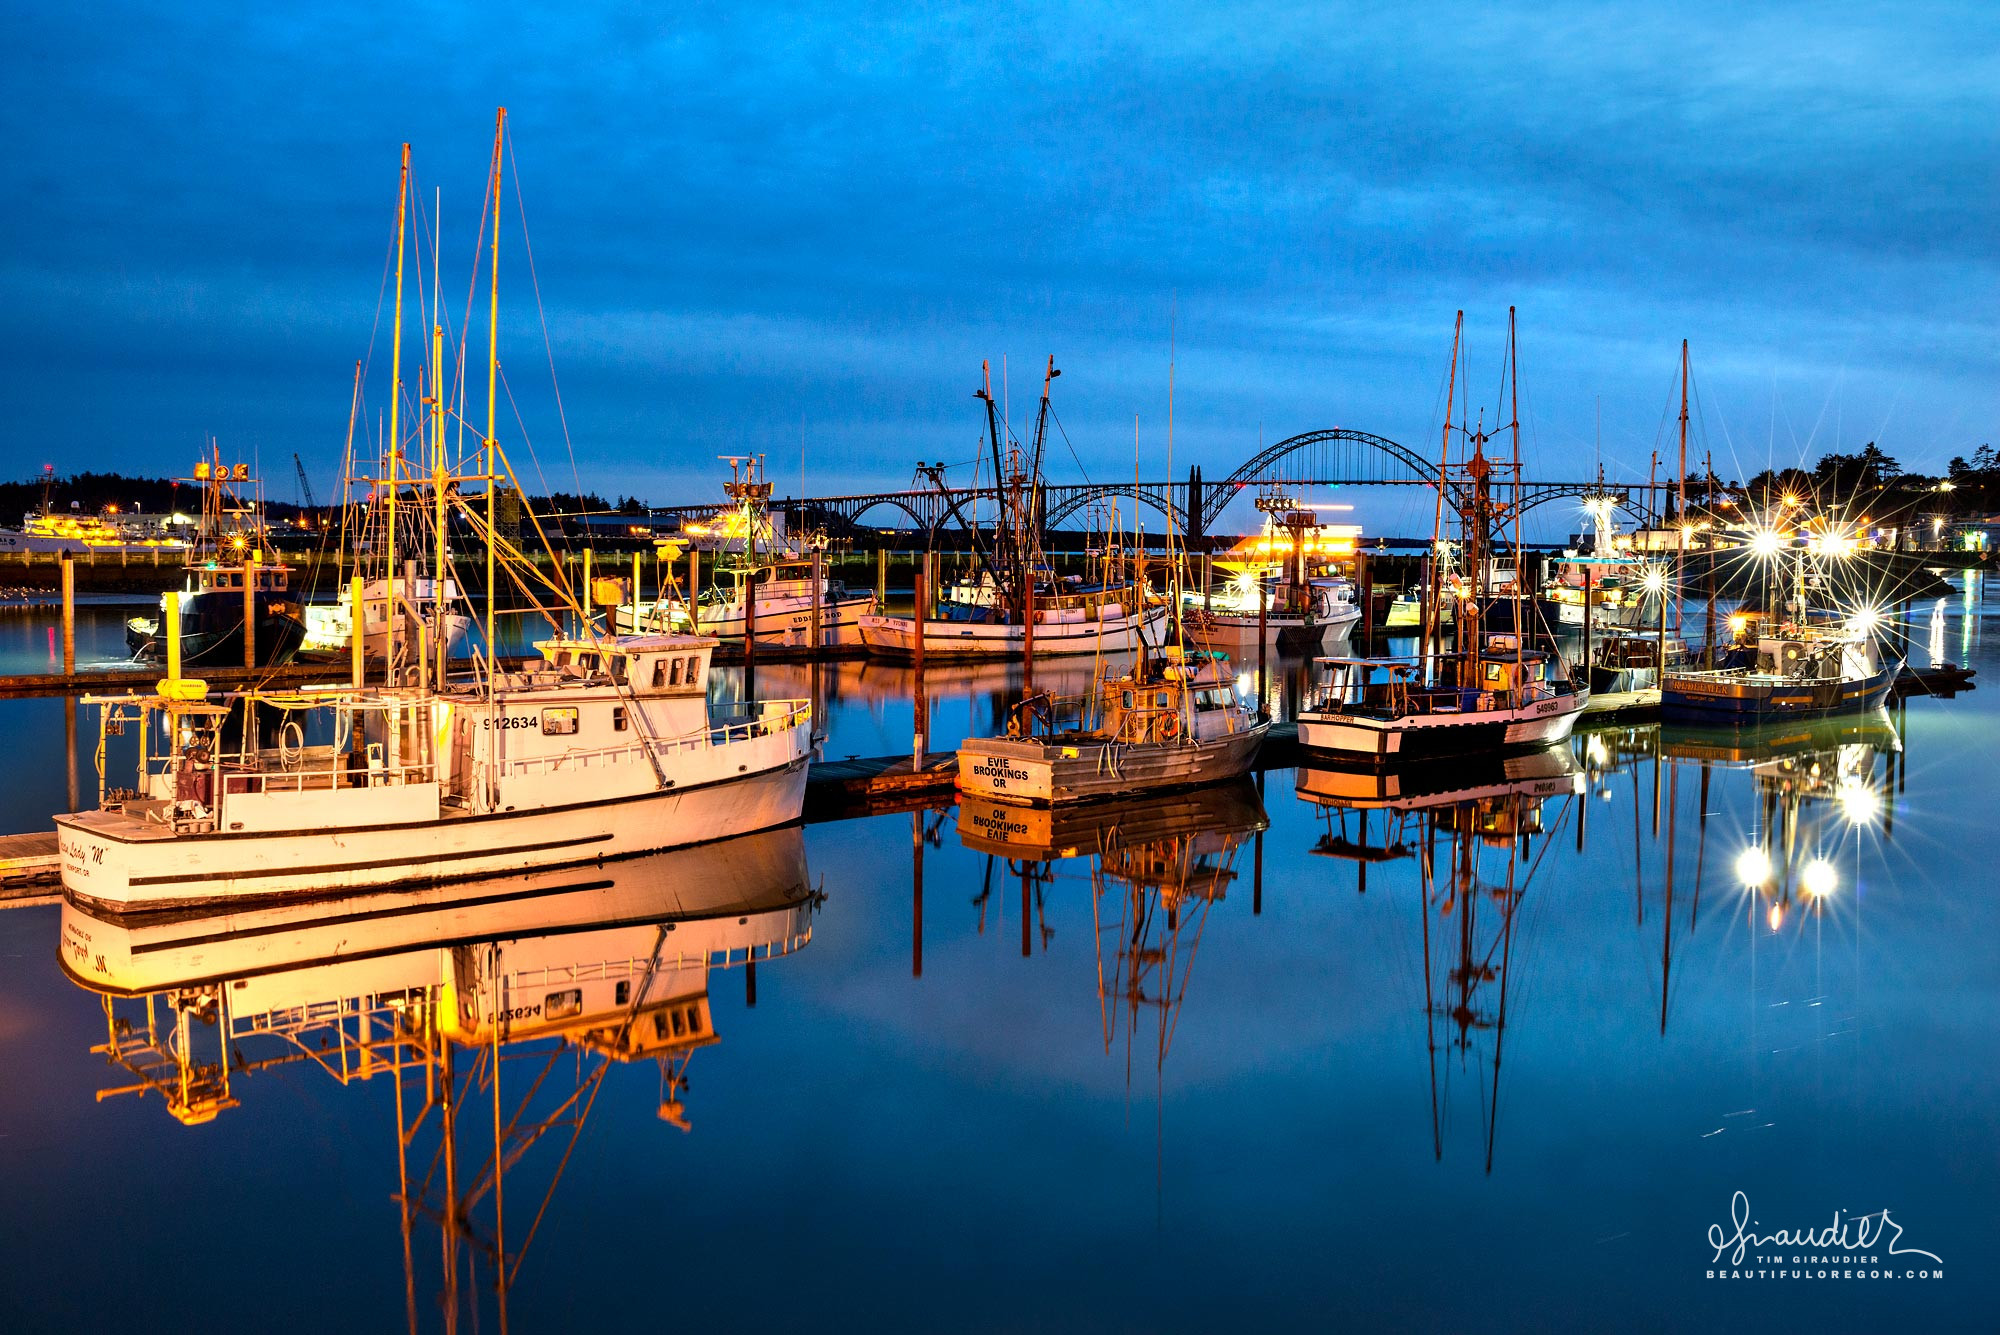 In the early morning hours, commercial fishing boats prepare to head to sea and collect their crab pots. Yaquina Bay, Newport Oregon.